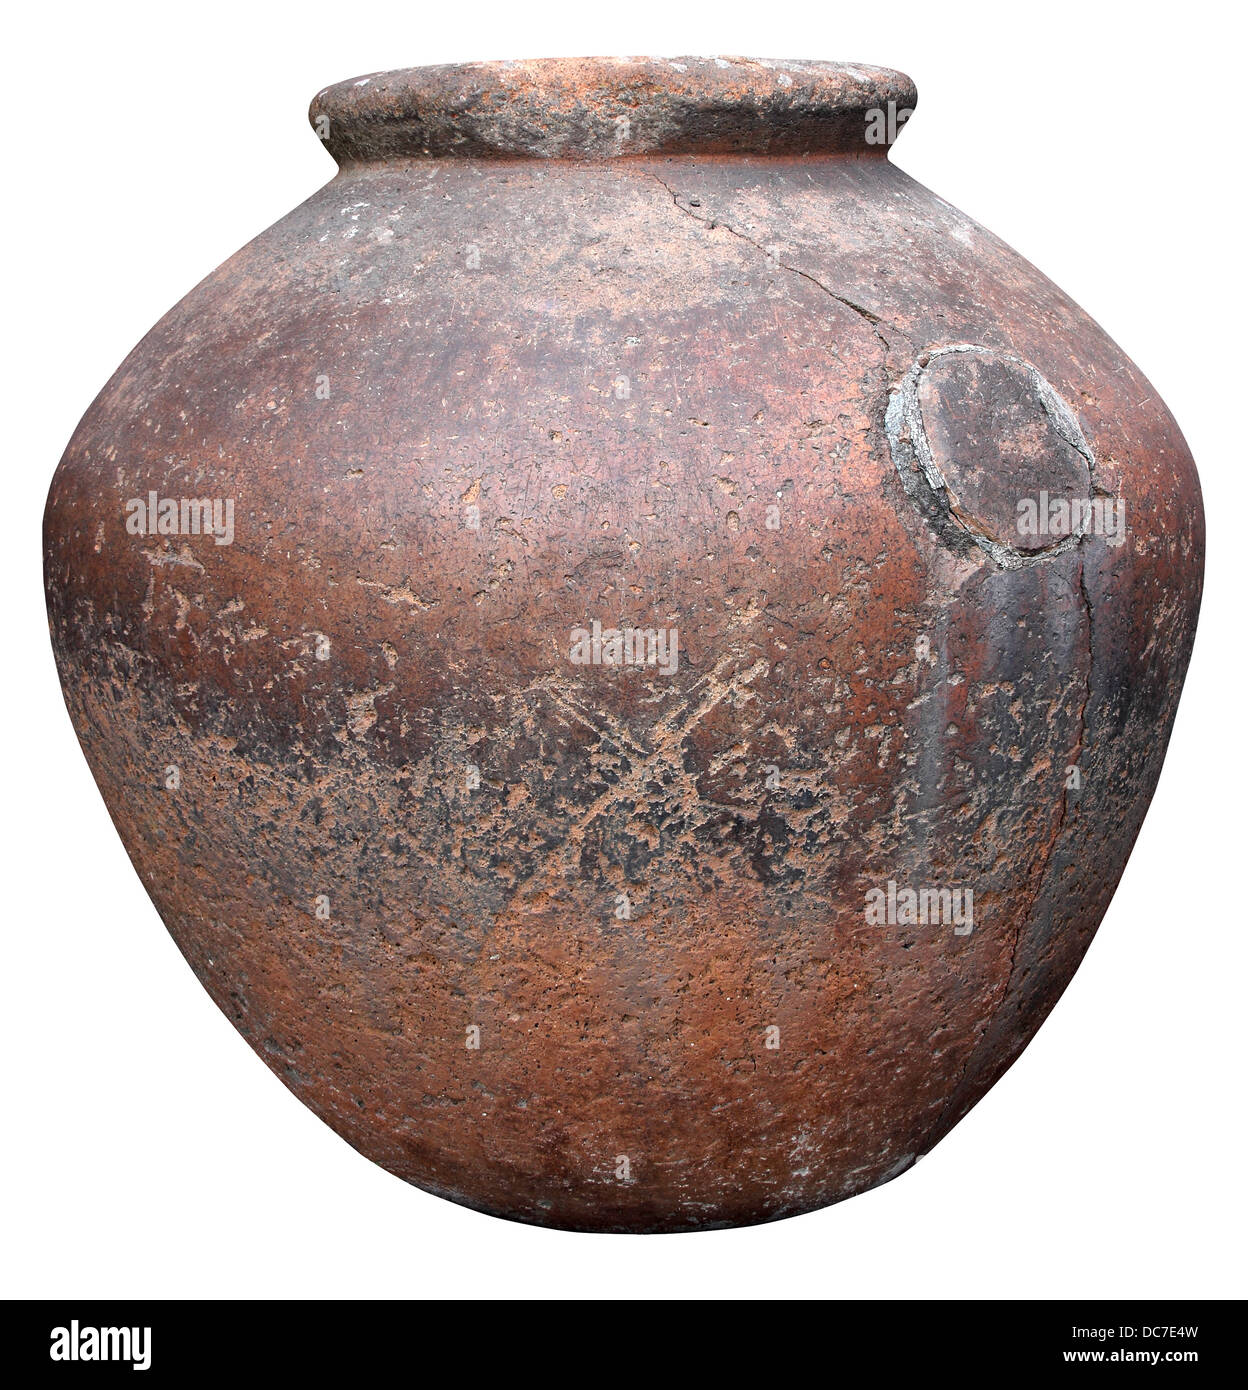 The ancient Roman clay pots for storing wine - Stock Image